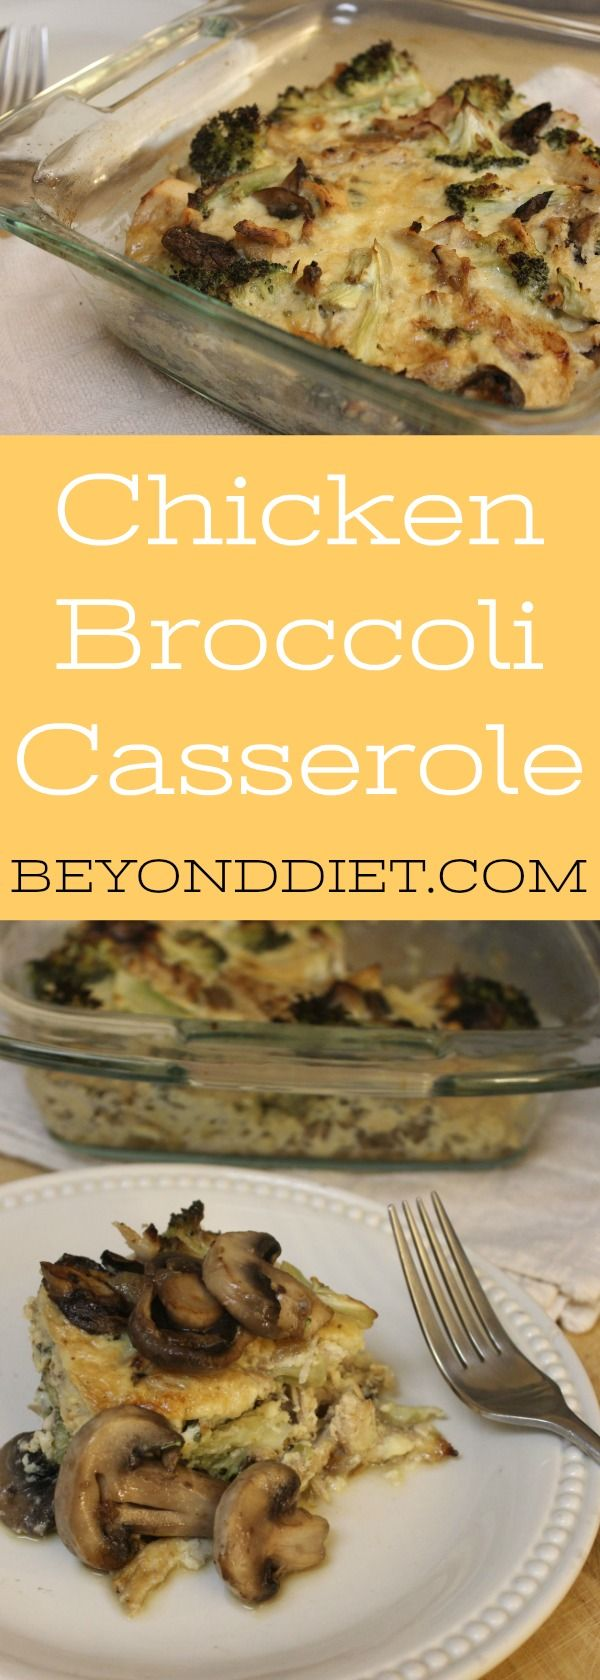 Chicken Broccoli Casserole | Beyond Diet Recipe